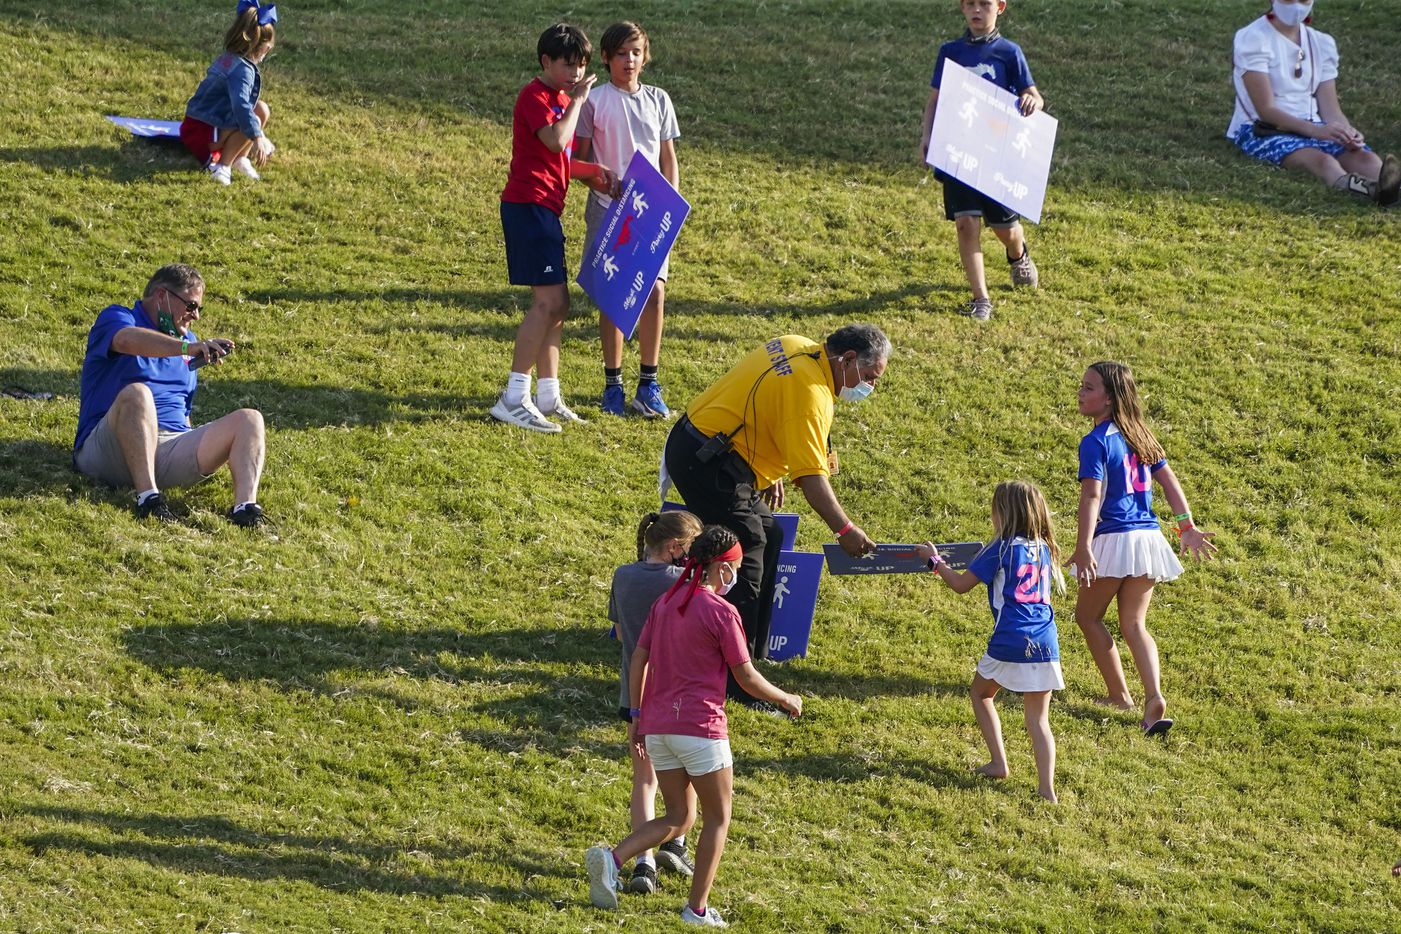 A stadium official collects social distancing signs from children who were using them to slide down the hill in the south end zone during the second half of an NCAA football game between SMU and Memphis at Ford Stadium on Saturday, Oct. 3, 2020, in Dallas.